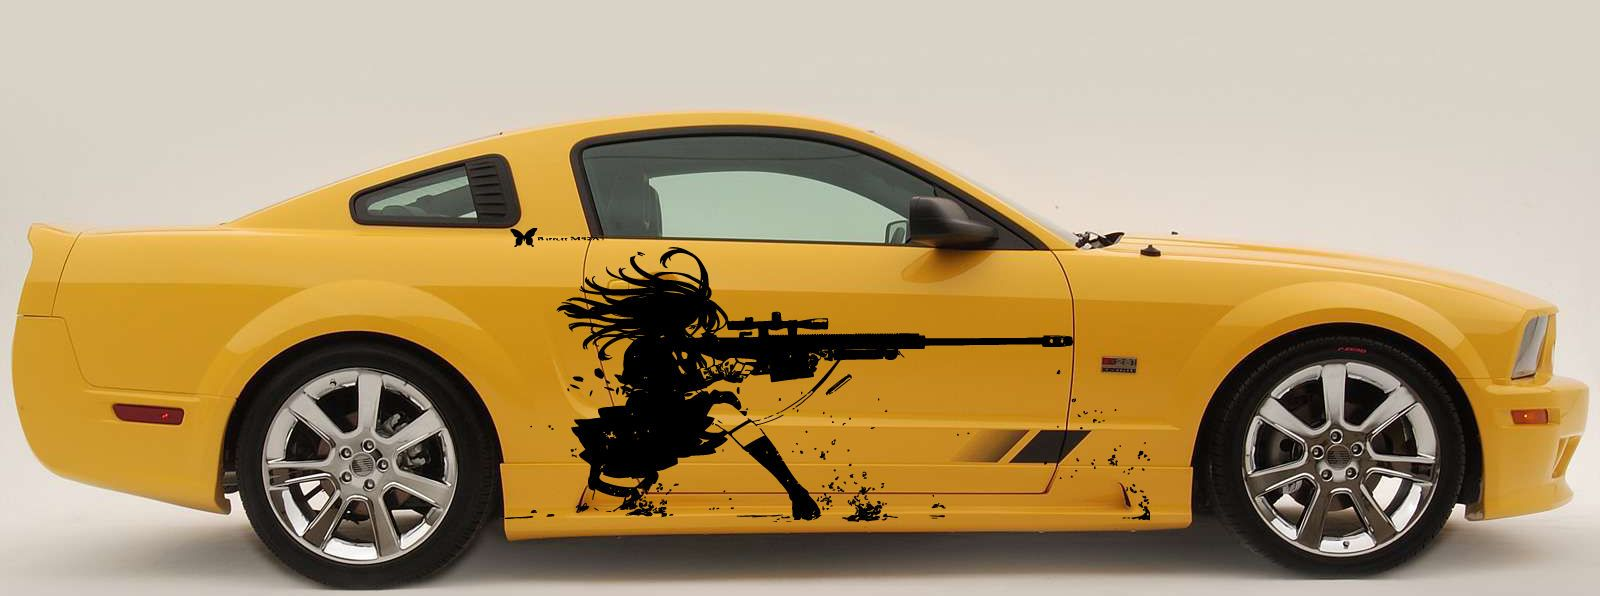 ANIME GIRL WITH A GUN Custom Wrap CAR VINYL SIDE GRAPHICS DECALS - Custom design car decals free